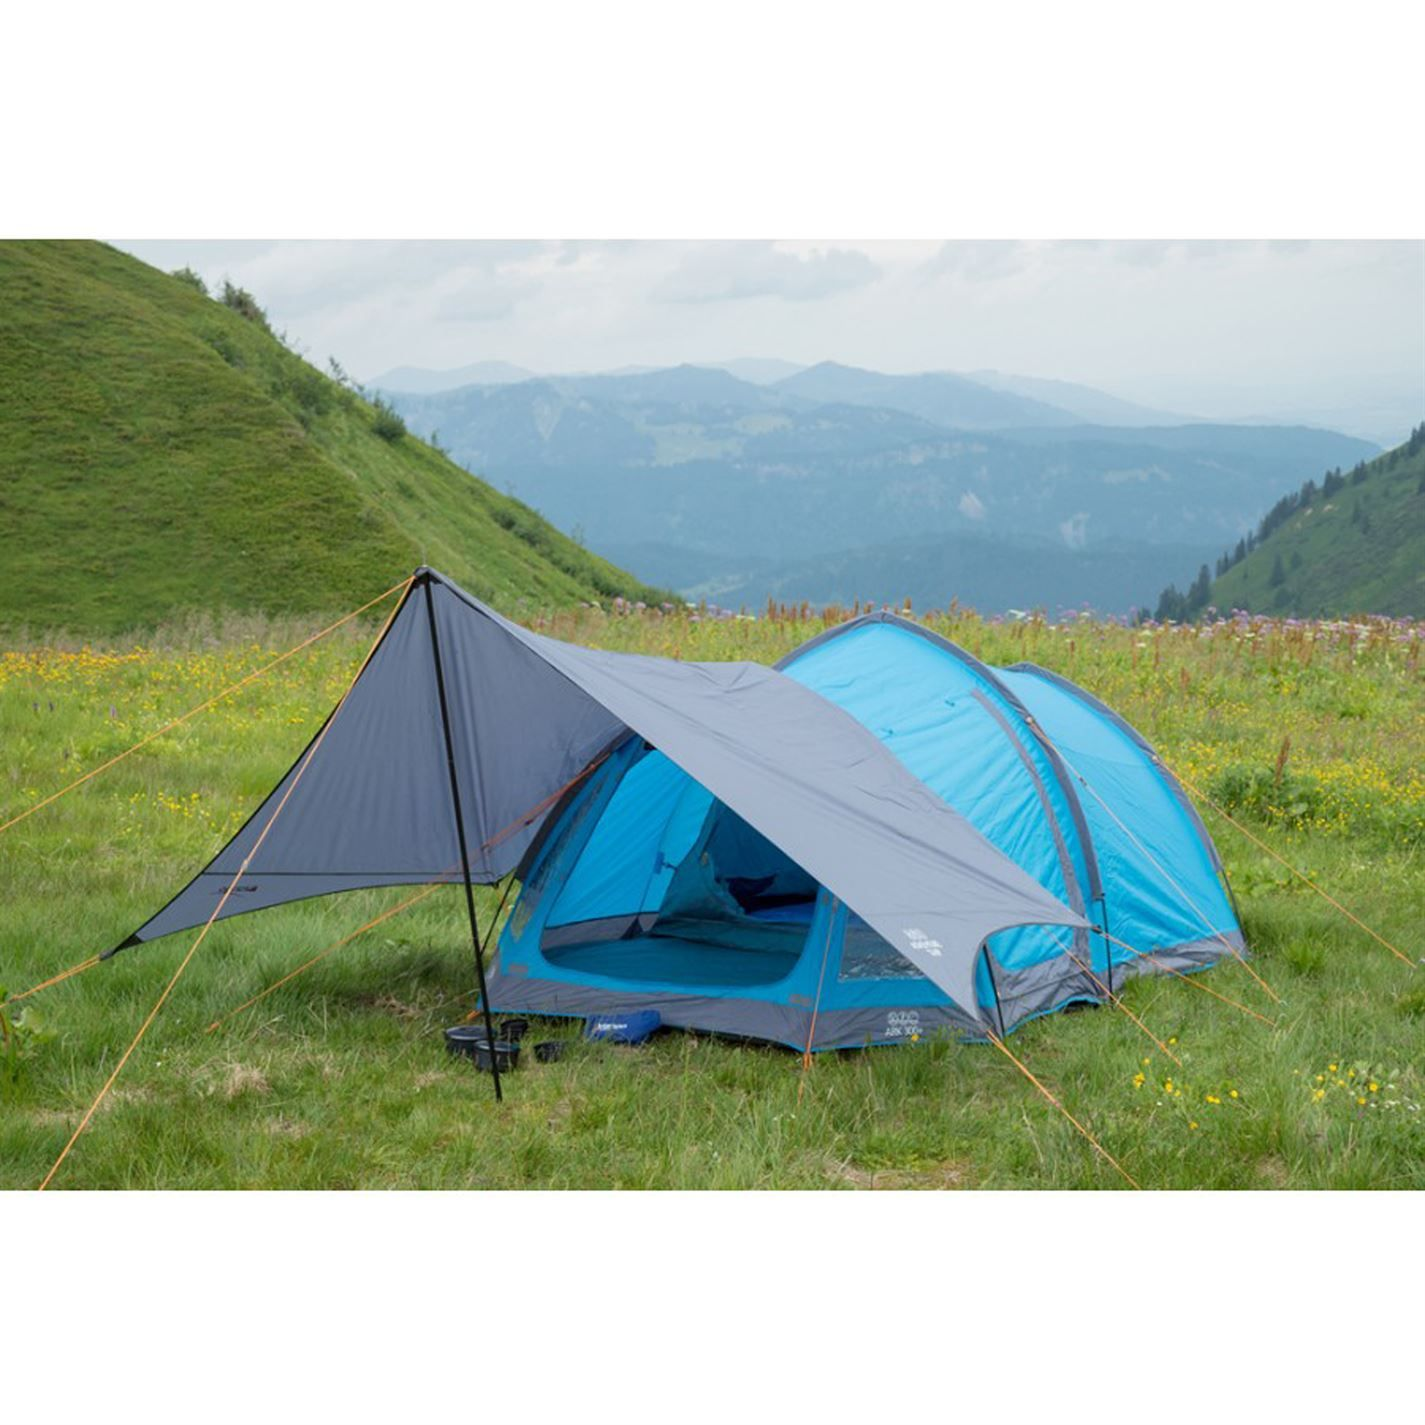 Vango | Vango Adventure Tarp | Tent Accessories  sc 1 st  Pinterest & Vango | Vango Adventure Tarp | Tent Accessories | Camping tips ...